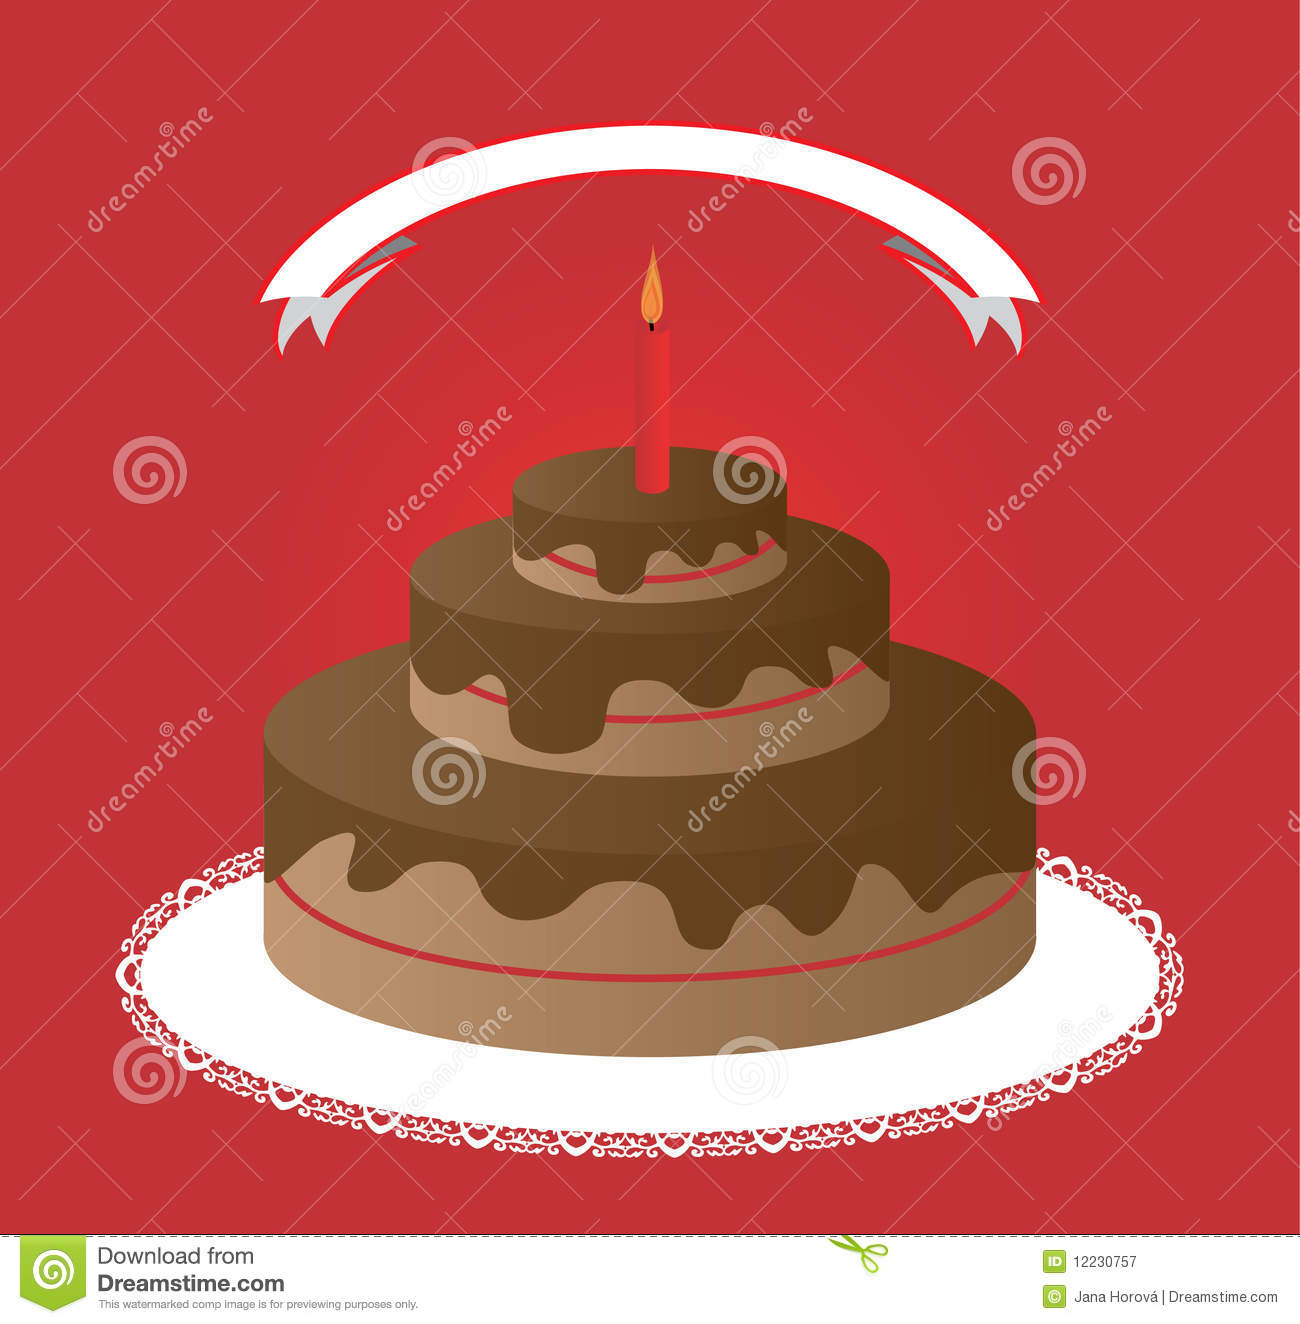 Cake Royalty Free Stock Photography - Image: 12230757